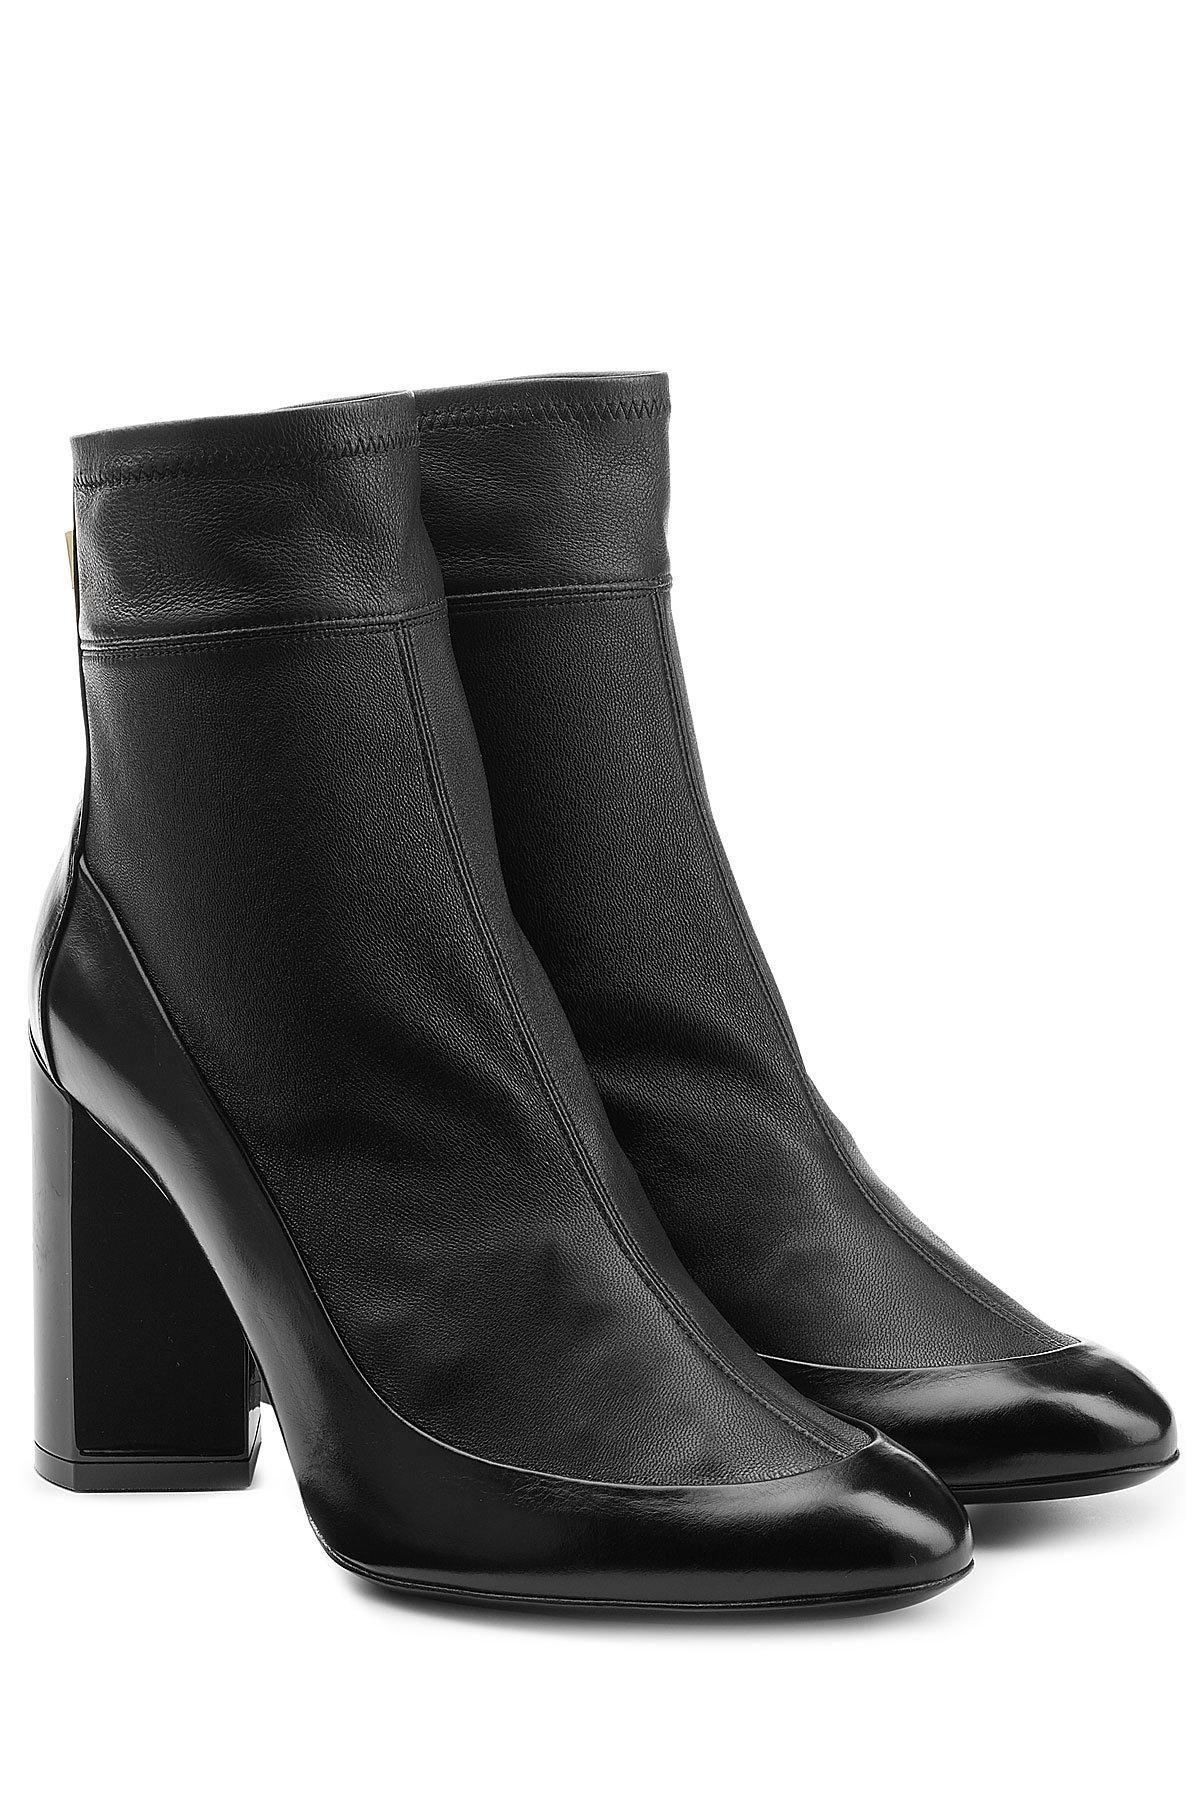 100% original online latest cheap price Pierre Hardy Leather Ankle Boots outlet best prices Rlv1yKgQWs